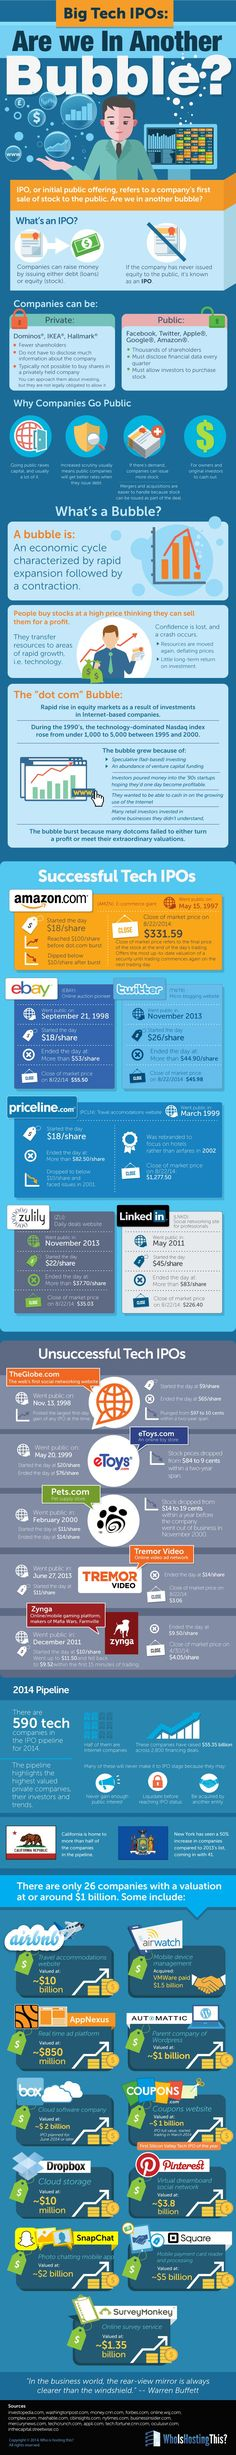 Big Tech IPOs: Are We in Another Bubble? #infographic #TechIPO #Stock #Investment